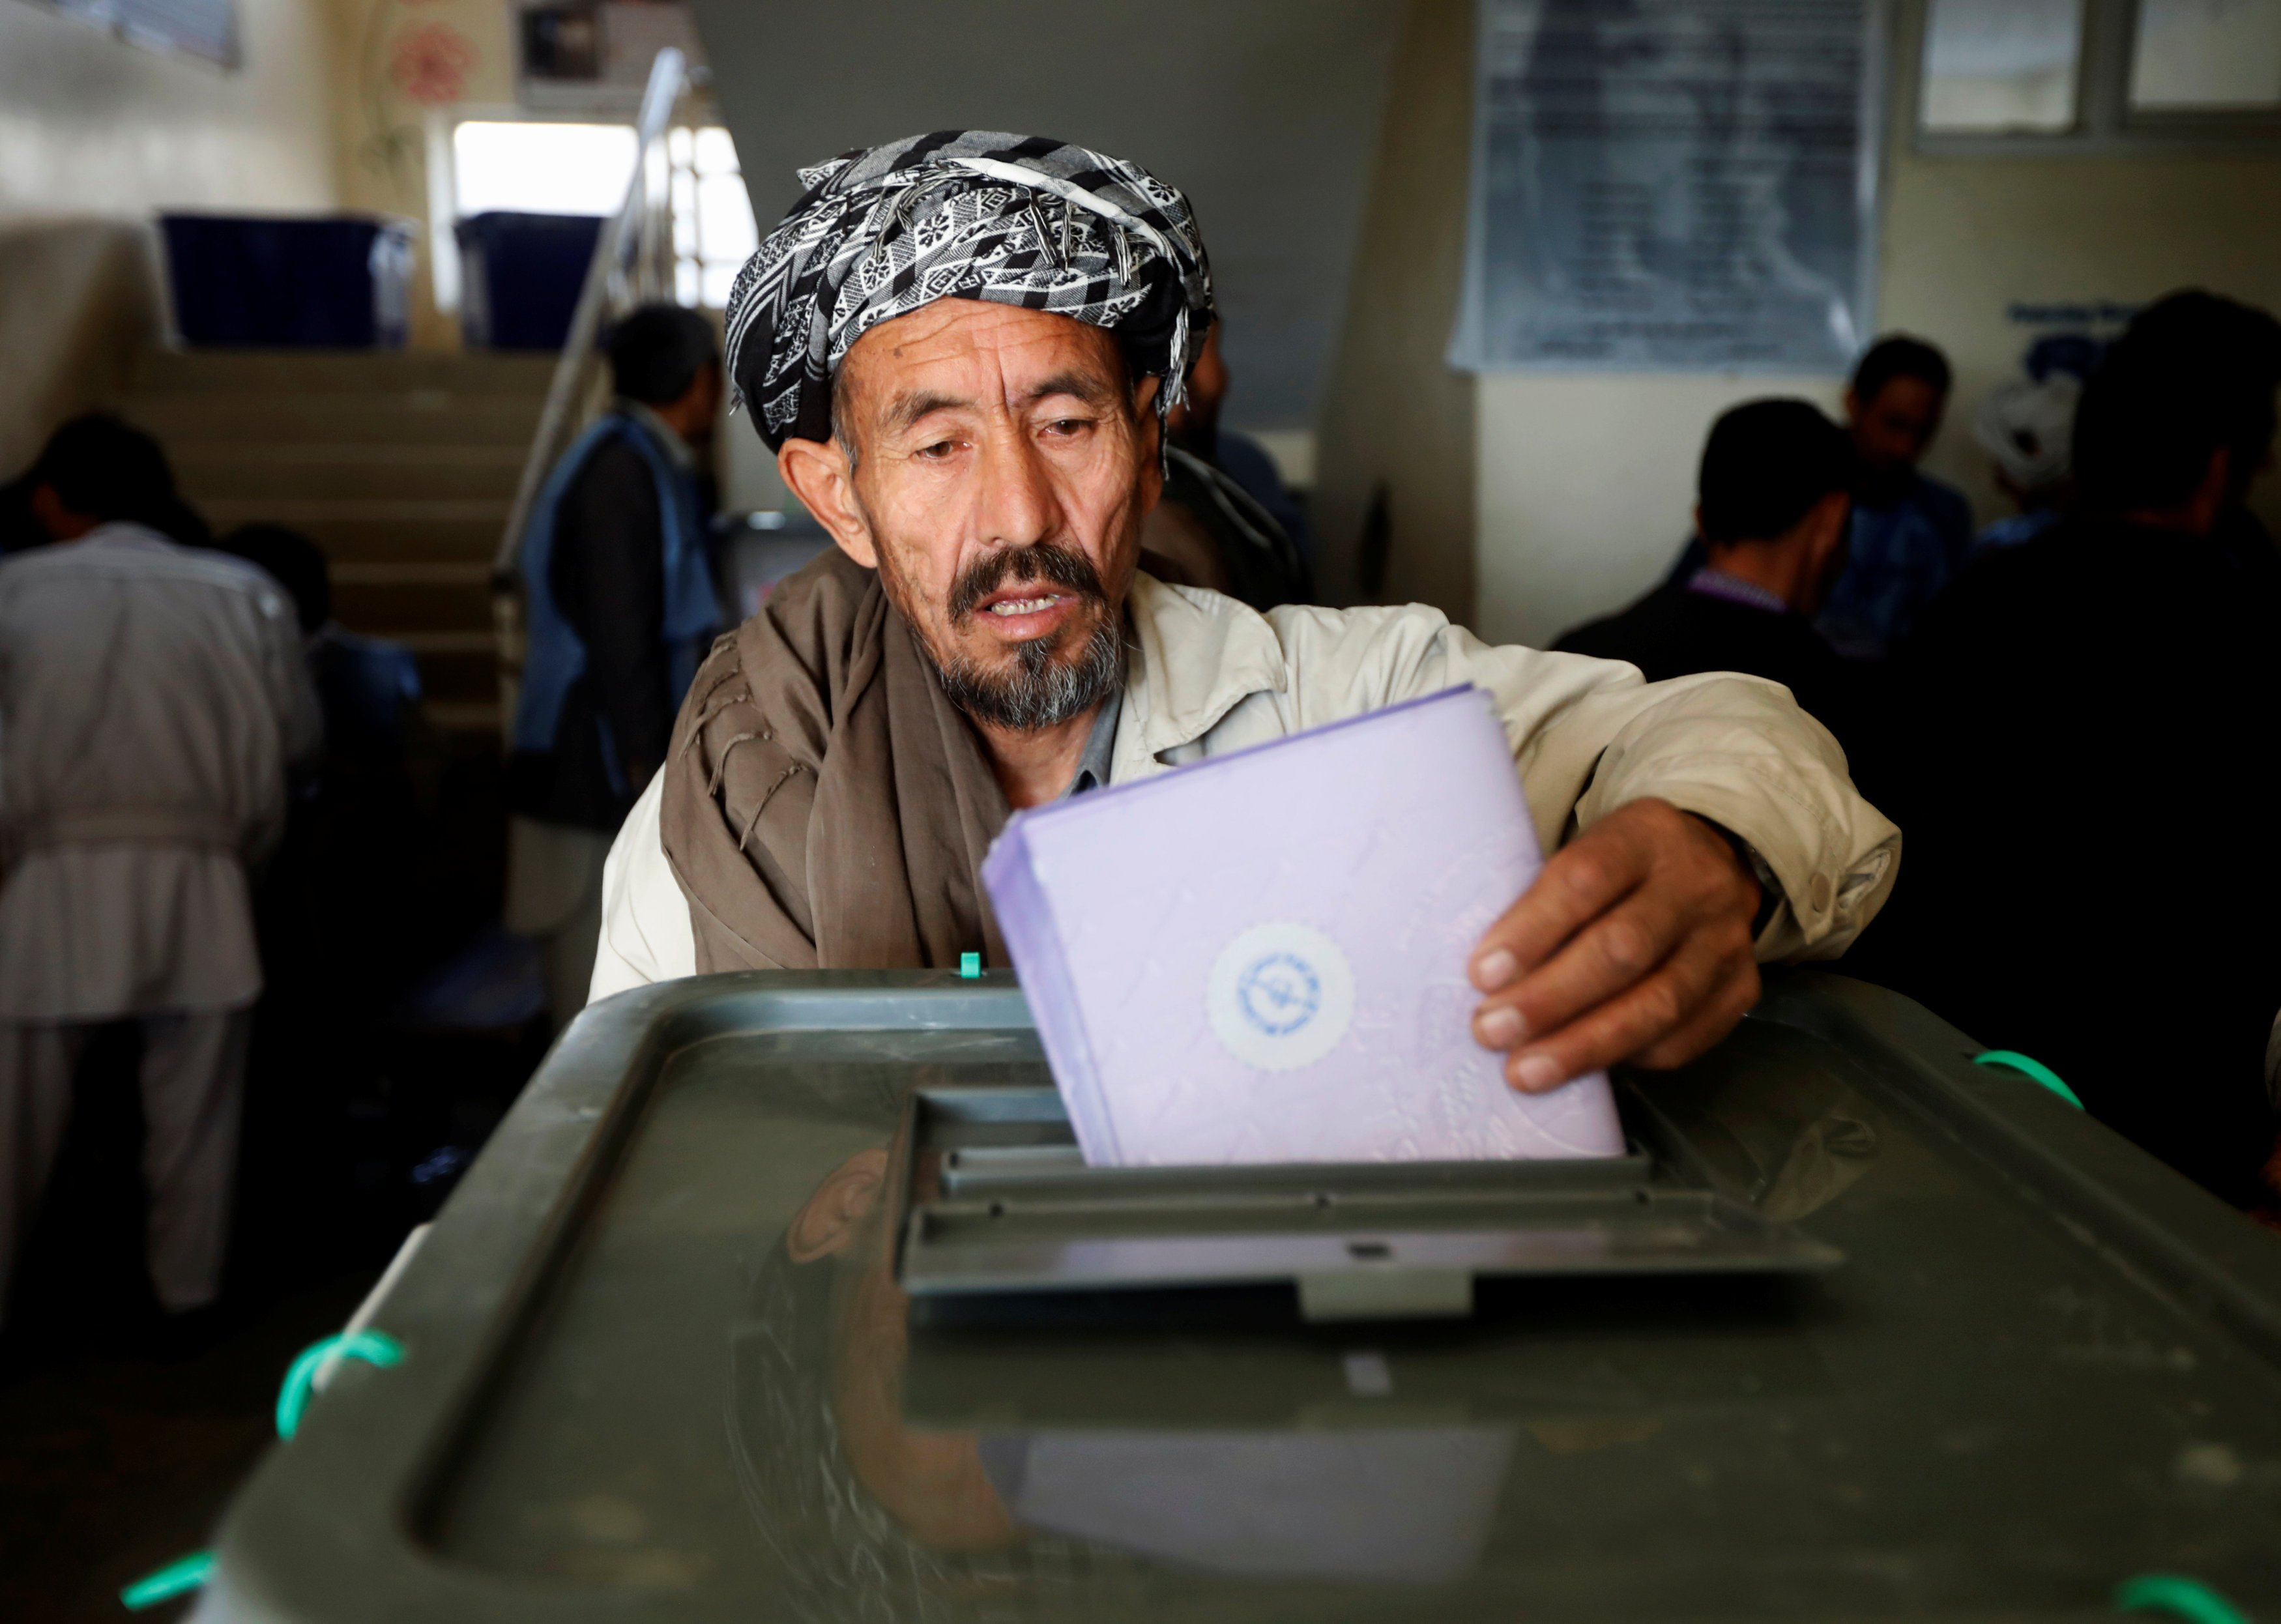 An Afghan man casts his vote during the parliamentary election at a polling station in Kabul, Oct. 21, 2018. (REUTERS)